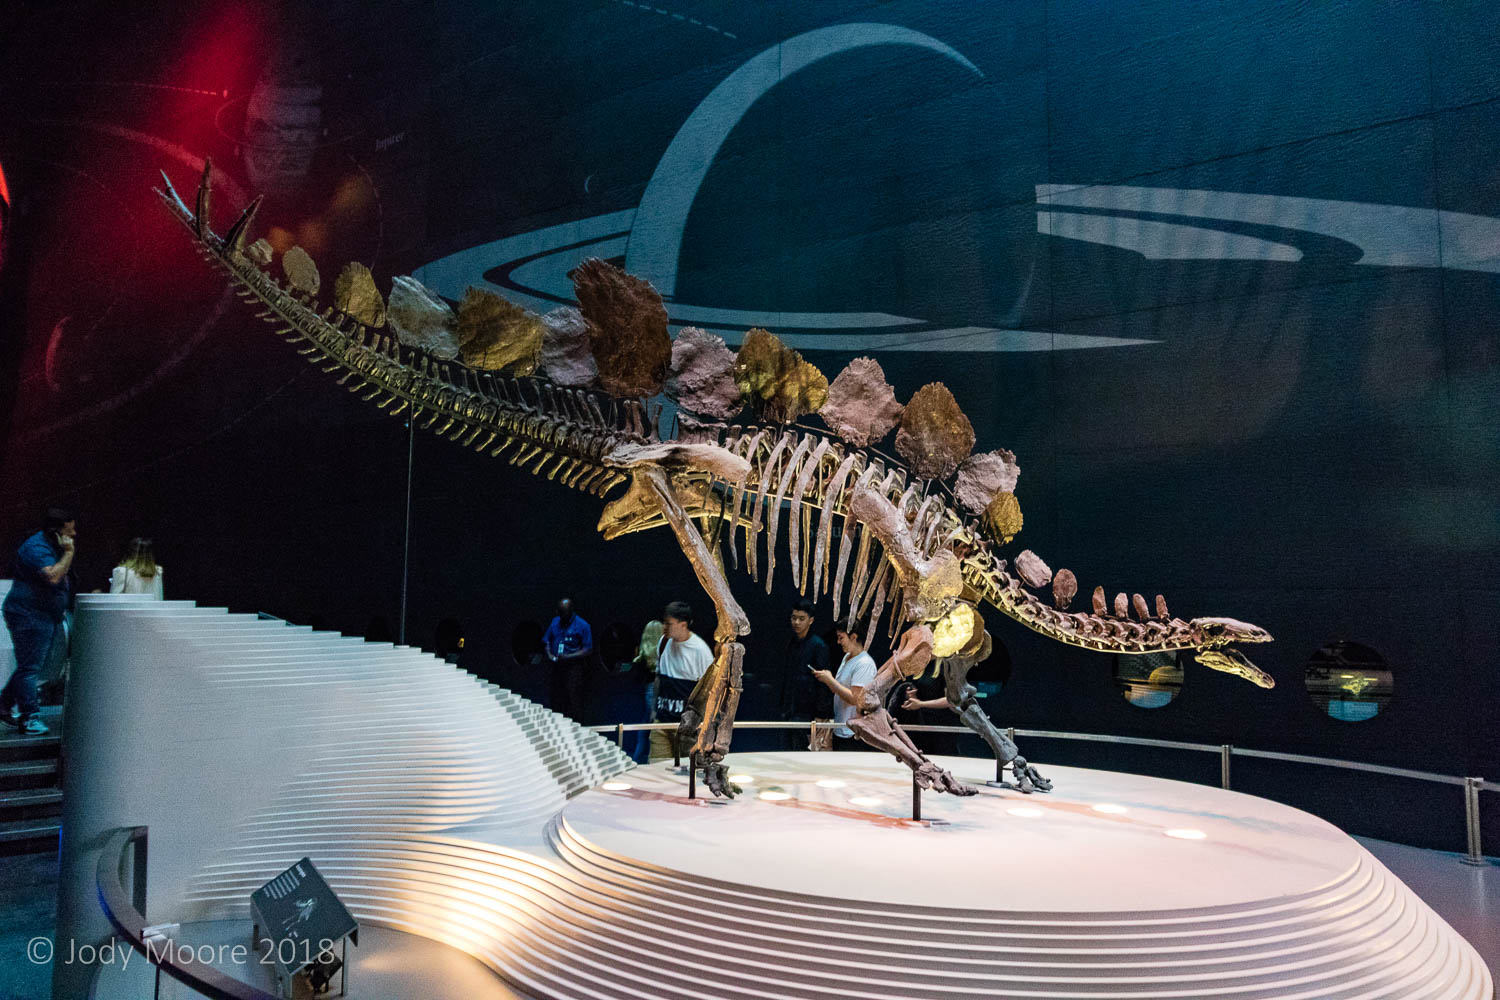 Sophie the Stegosaurus takes center stage at the entrance to the Earth Hall at the British Museum of Natural History in London, UK. Sept. 2017.